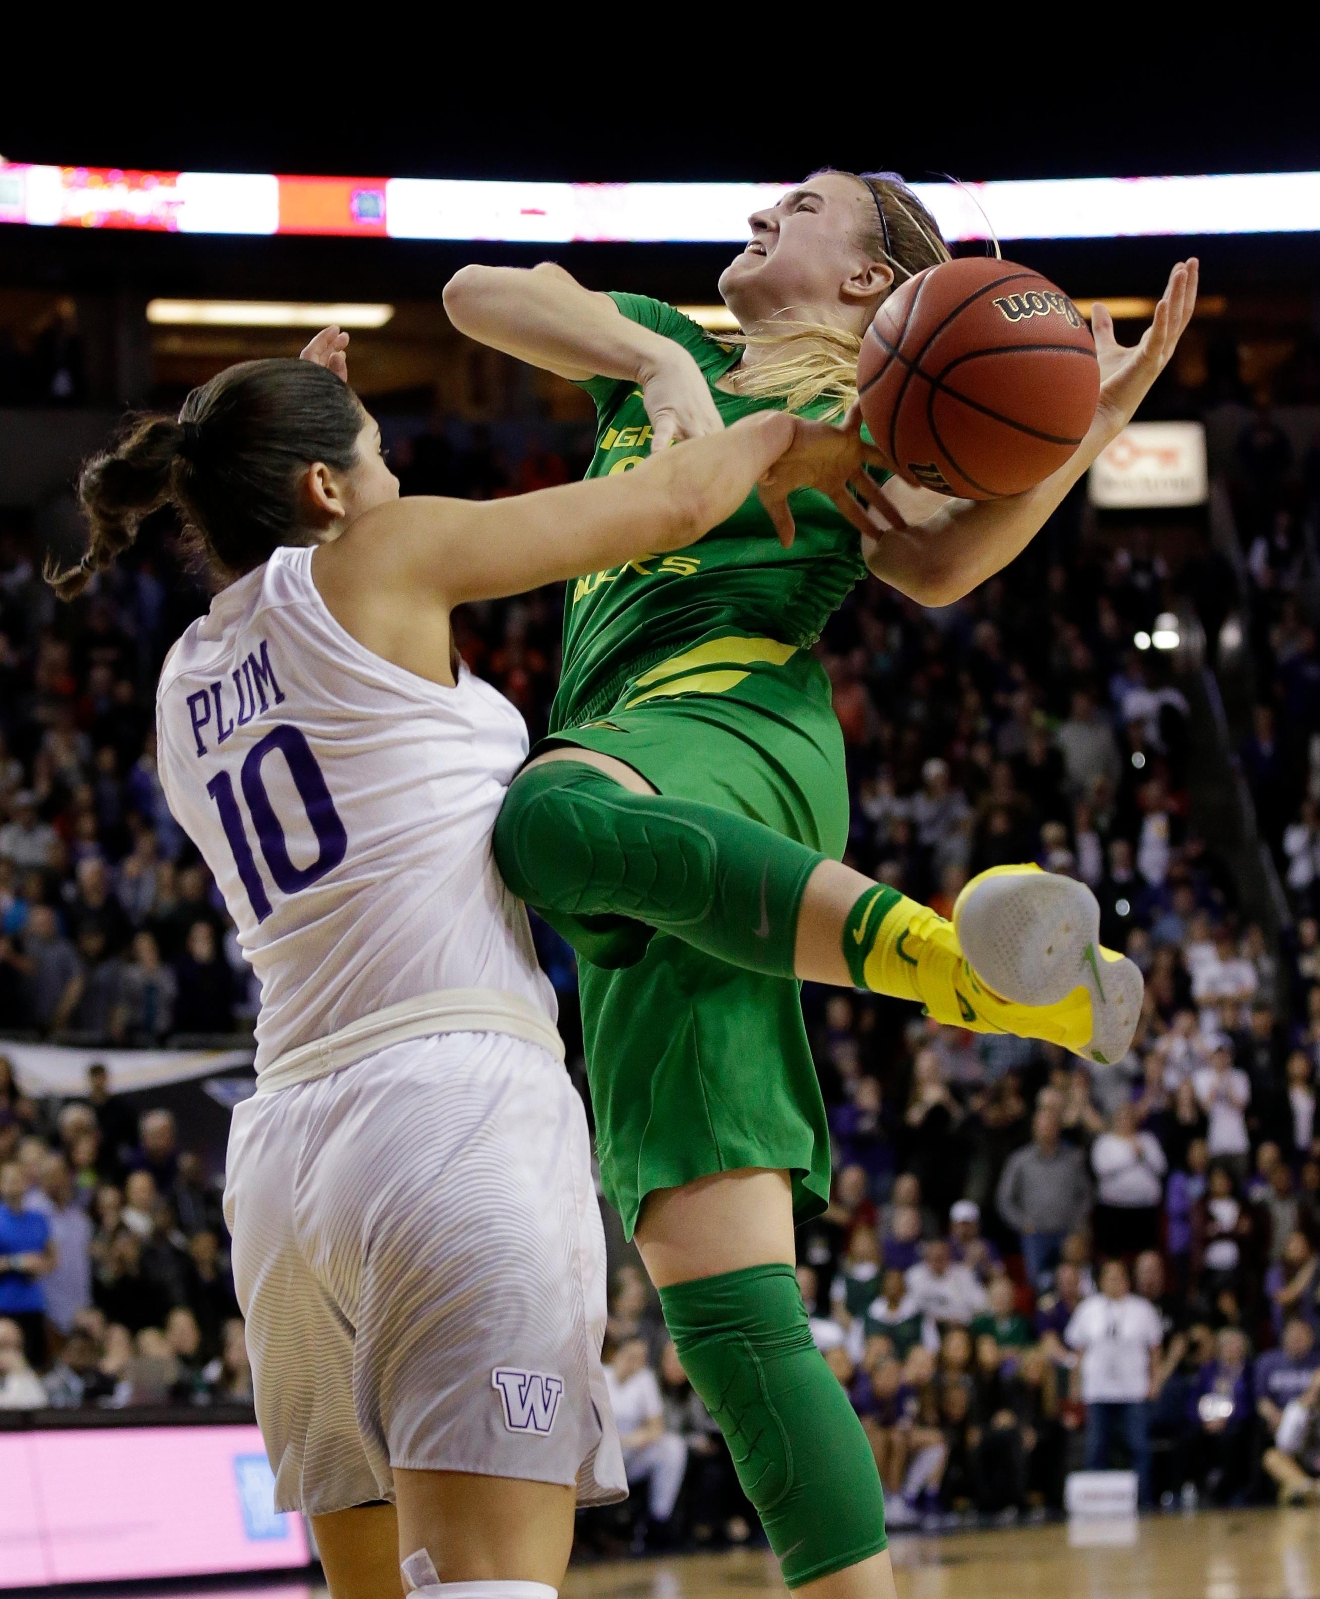 Washington's Kelsey Plum (10) fouls Oregon's Sabrina Ionescu late in the second half of an NCAA college basketball game in the Pac-12 tournament, Friday, March 3, 2017, in Seattle. Oregon won 70-69. (AP Photo/Elaine Thompson)